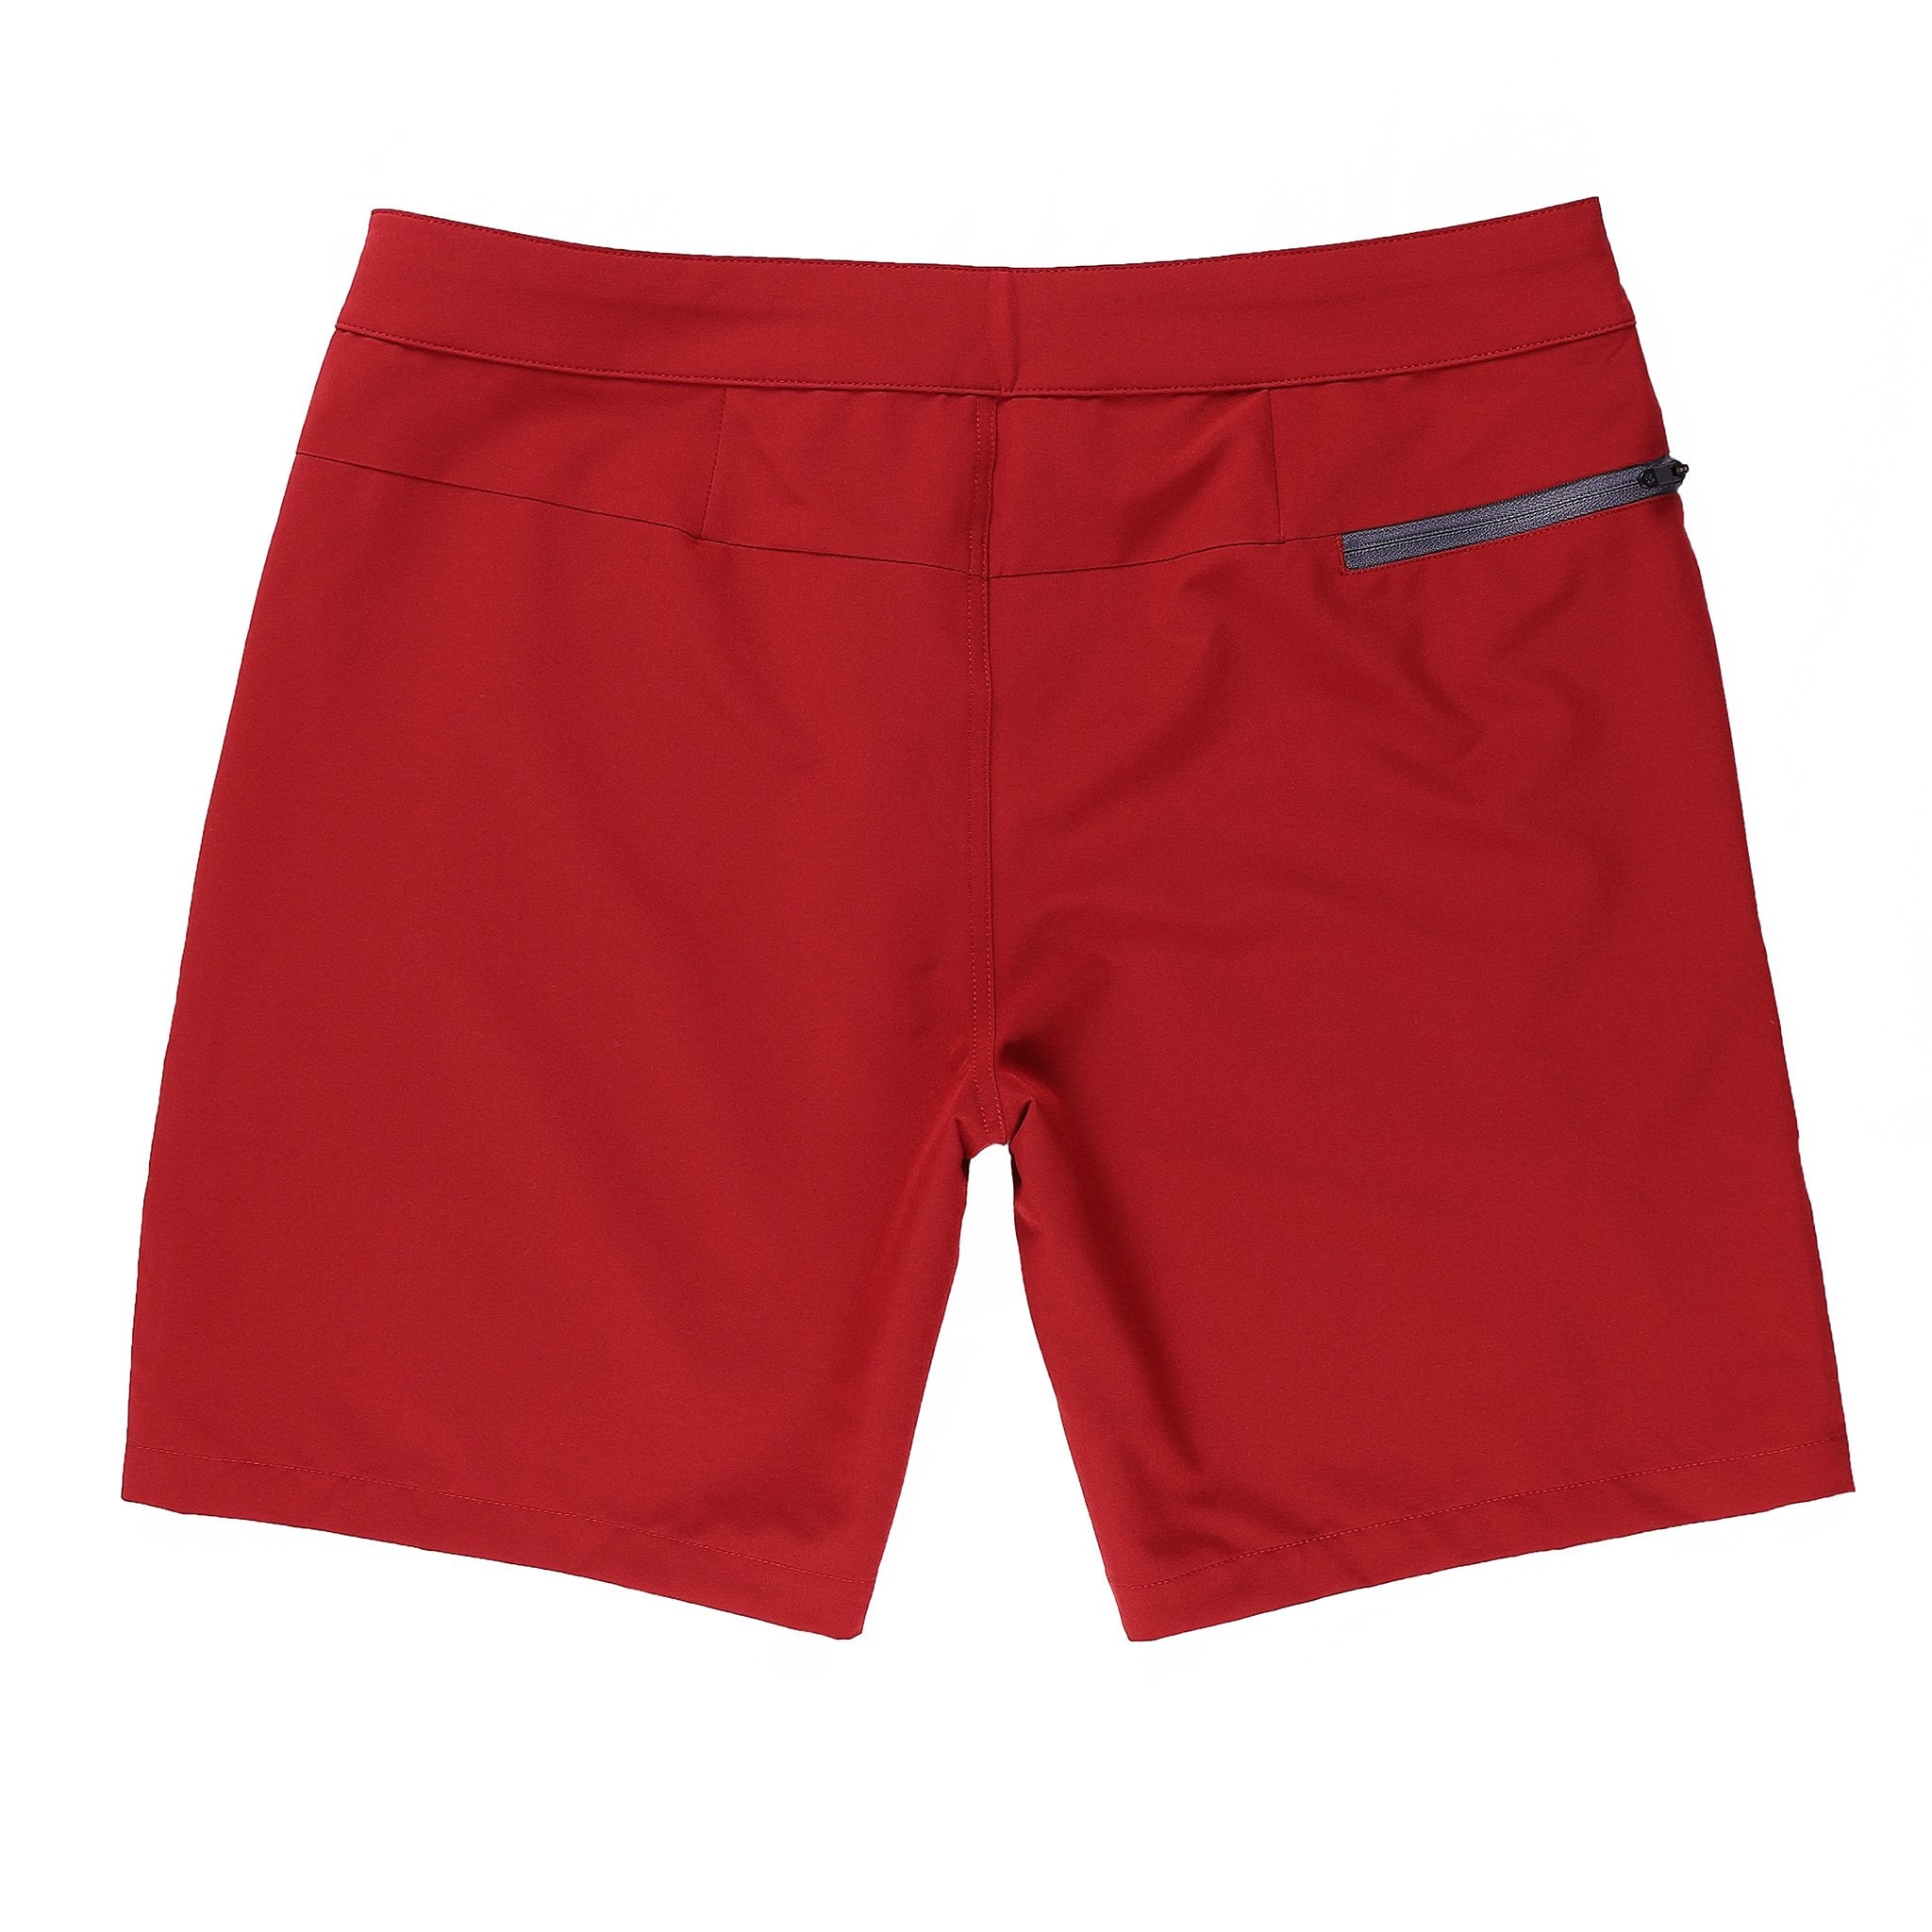 Seacliff Swim Short in Brick